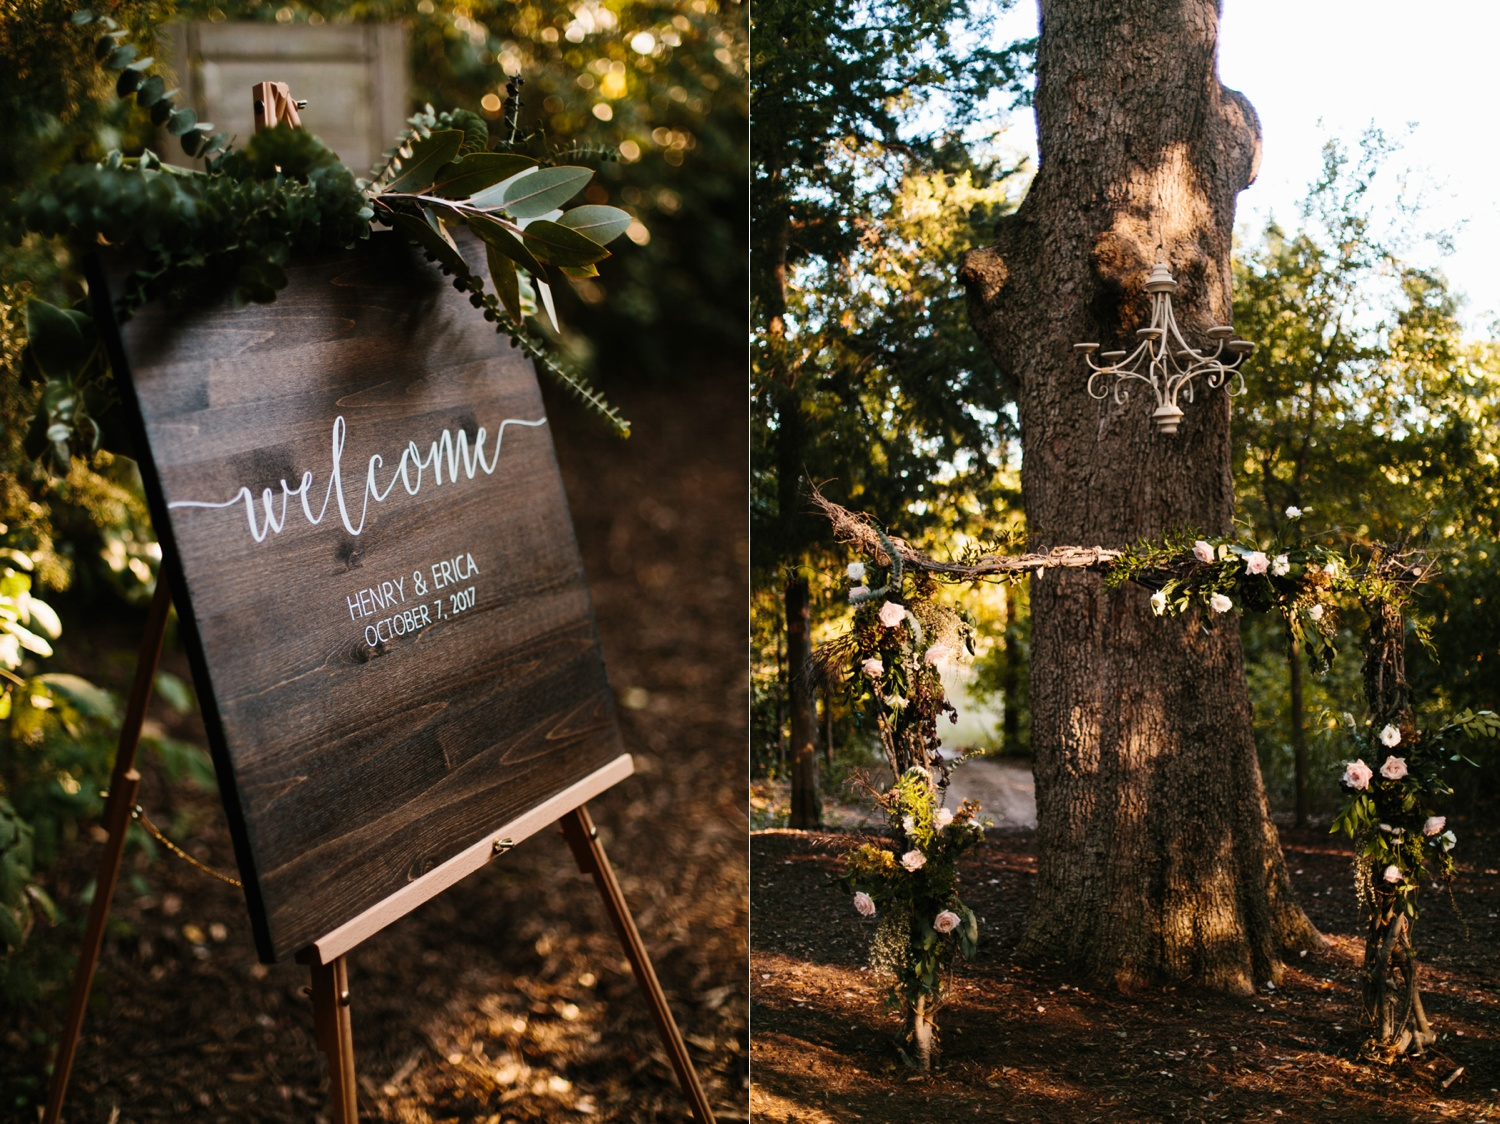 Erica + Henry | a bohemian inspired wedding at Chandlers Gardens in Salina, TX by North Texas Wedding Photographer Rachel Meagan Photography 065